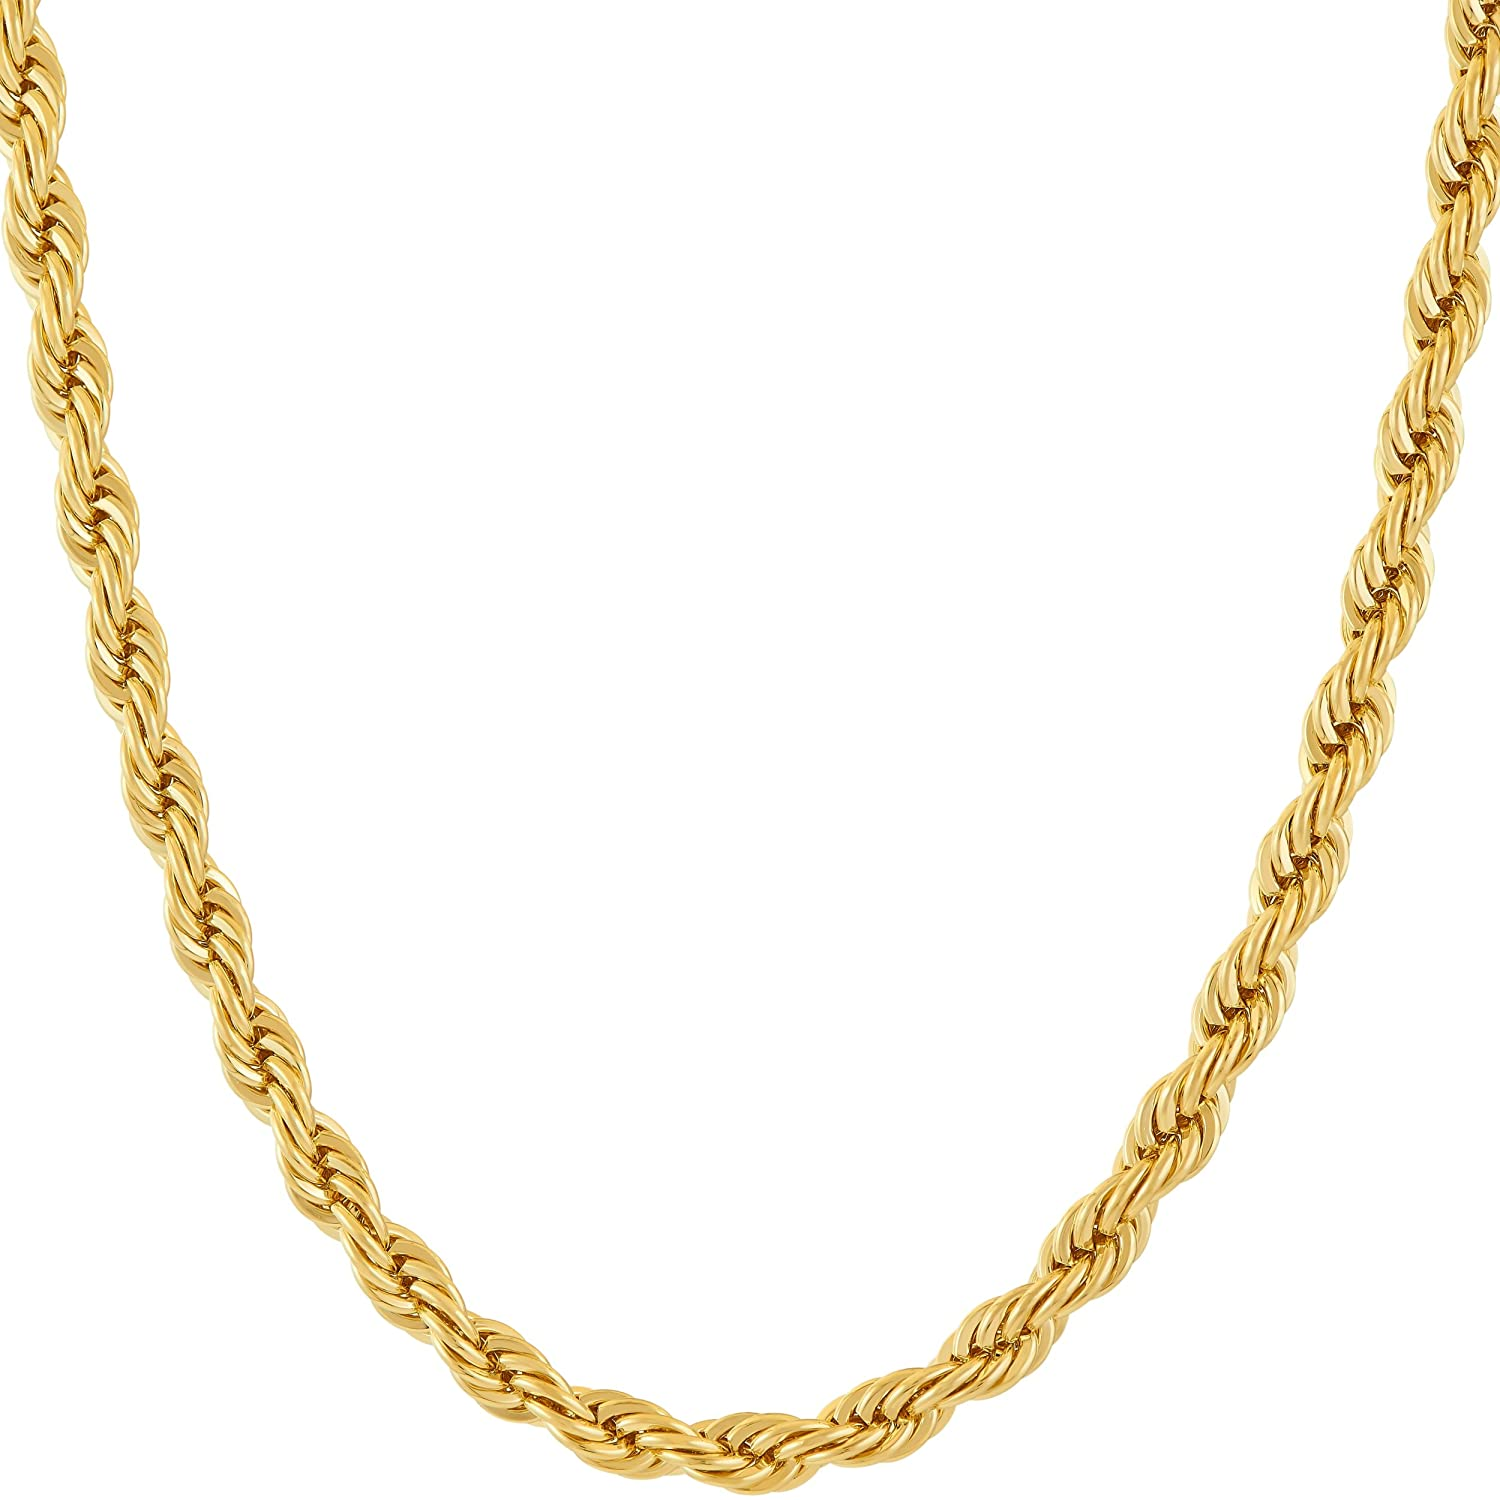 Lifetime Jewelry Gold Chain Necklace [ 5mm Rope Chain ] with Up to 20X More 24k Plating Than Other Necklace Chain - Durable Gold Necklaces for Women and Men with Free Lifetime Replacement Guarantee Guaranteed for Life Choker 16 Inches Lifetime Products Gr